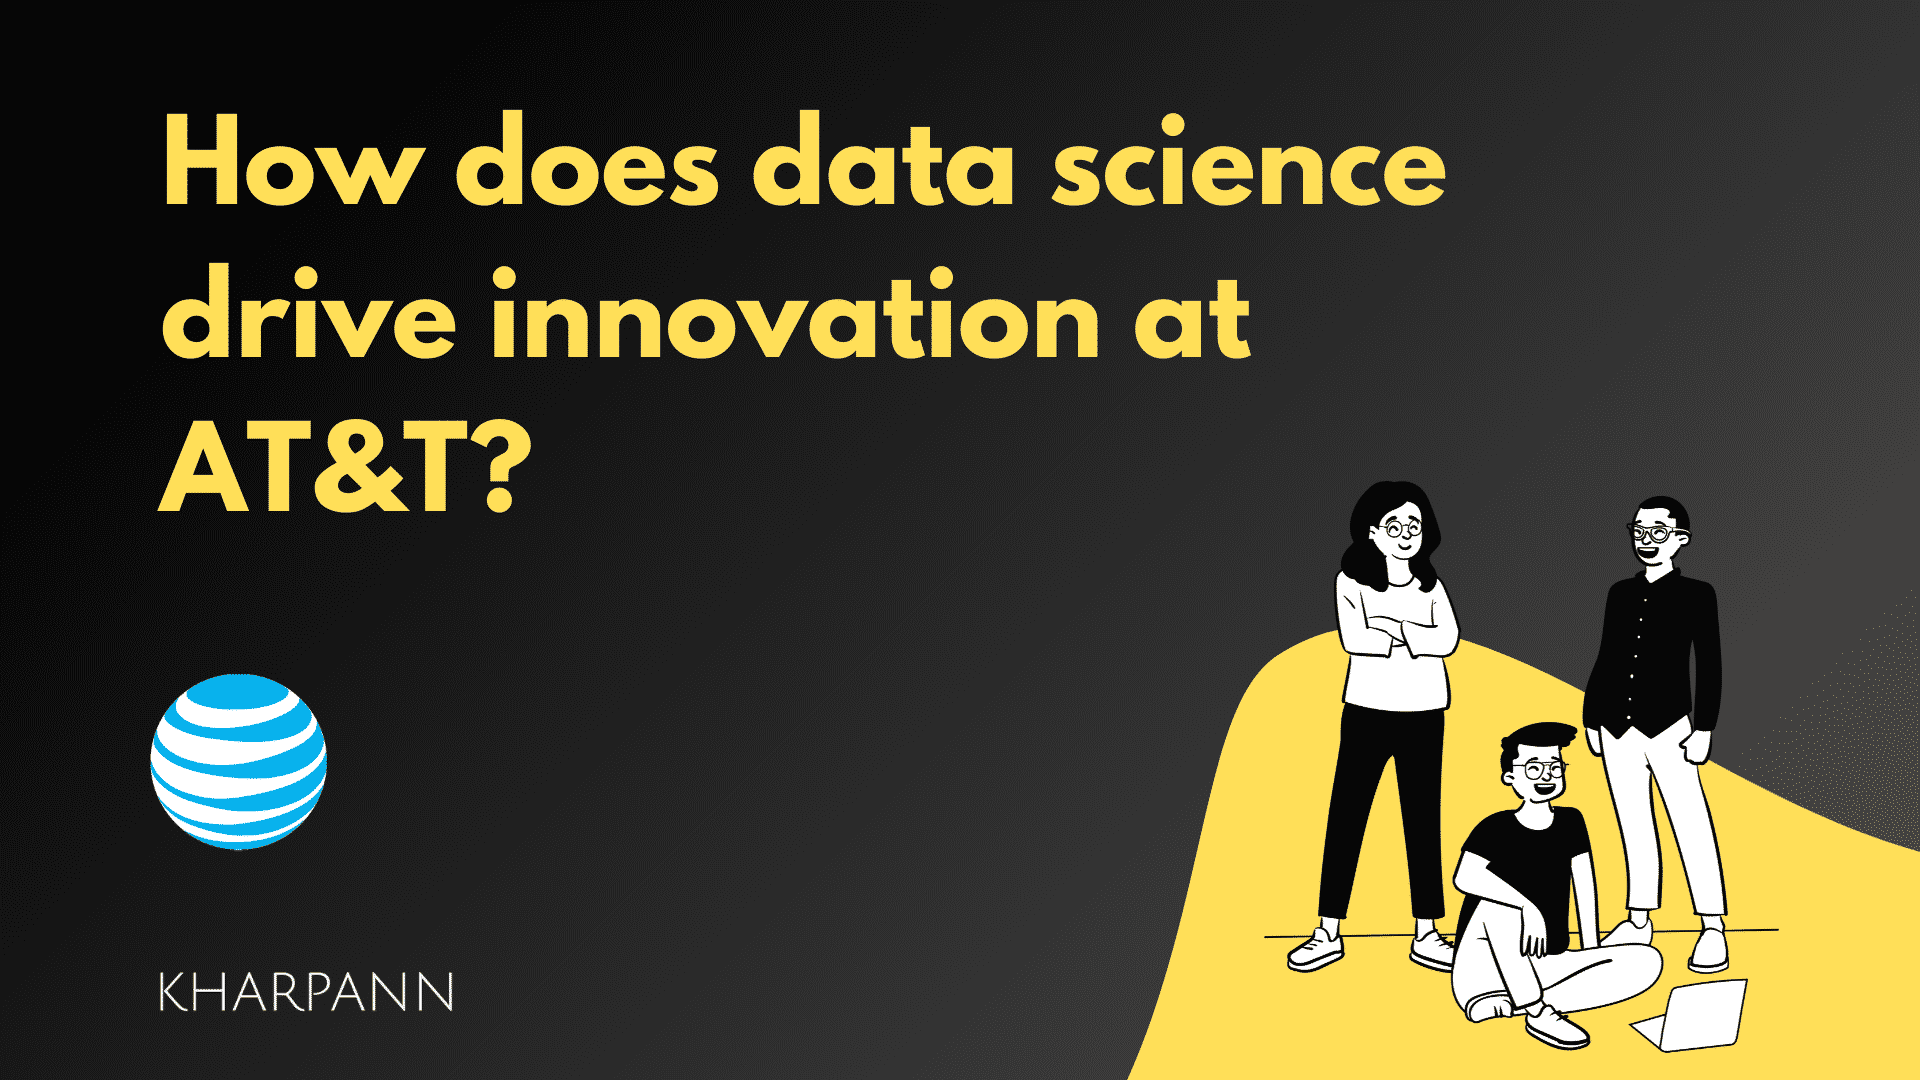 How does data science drive innovation at AT&T?